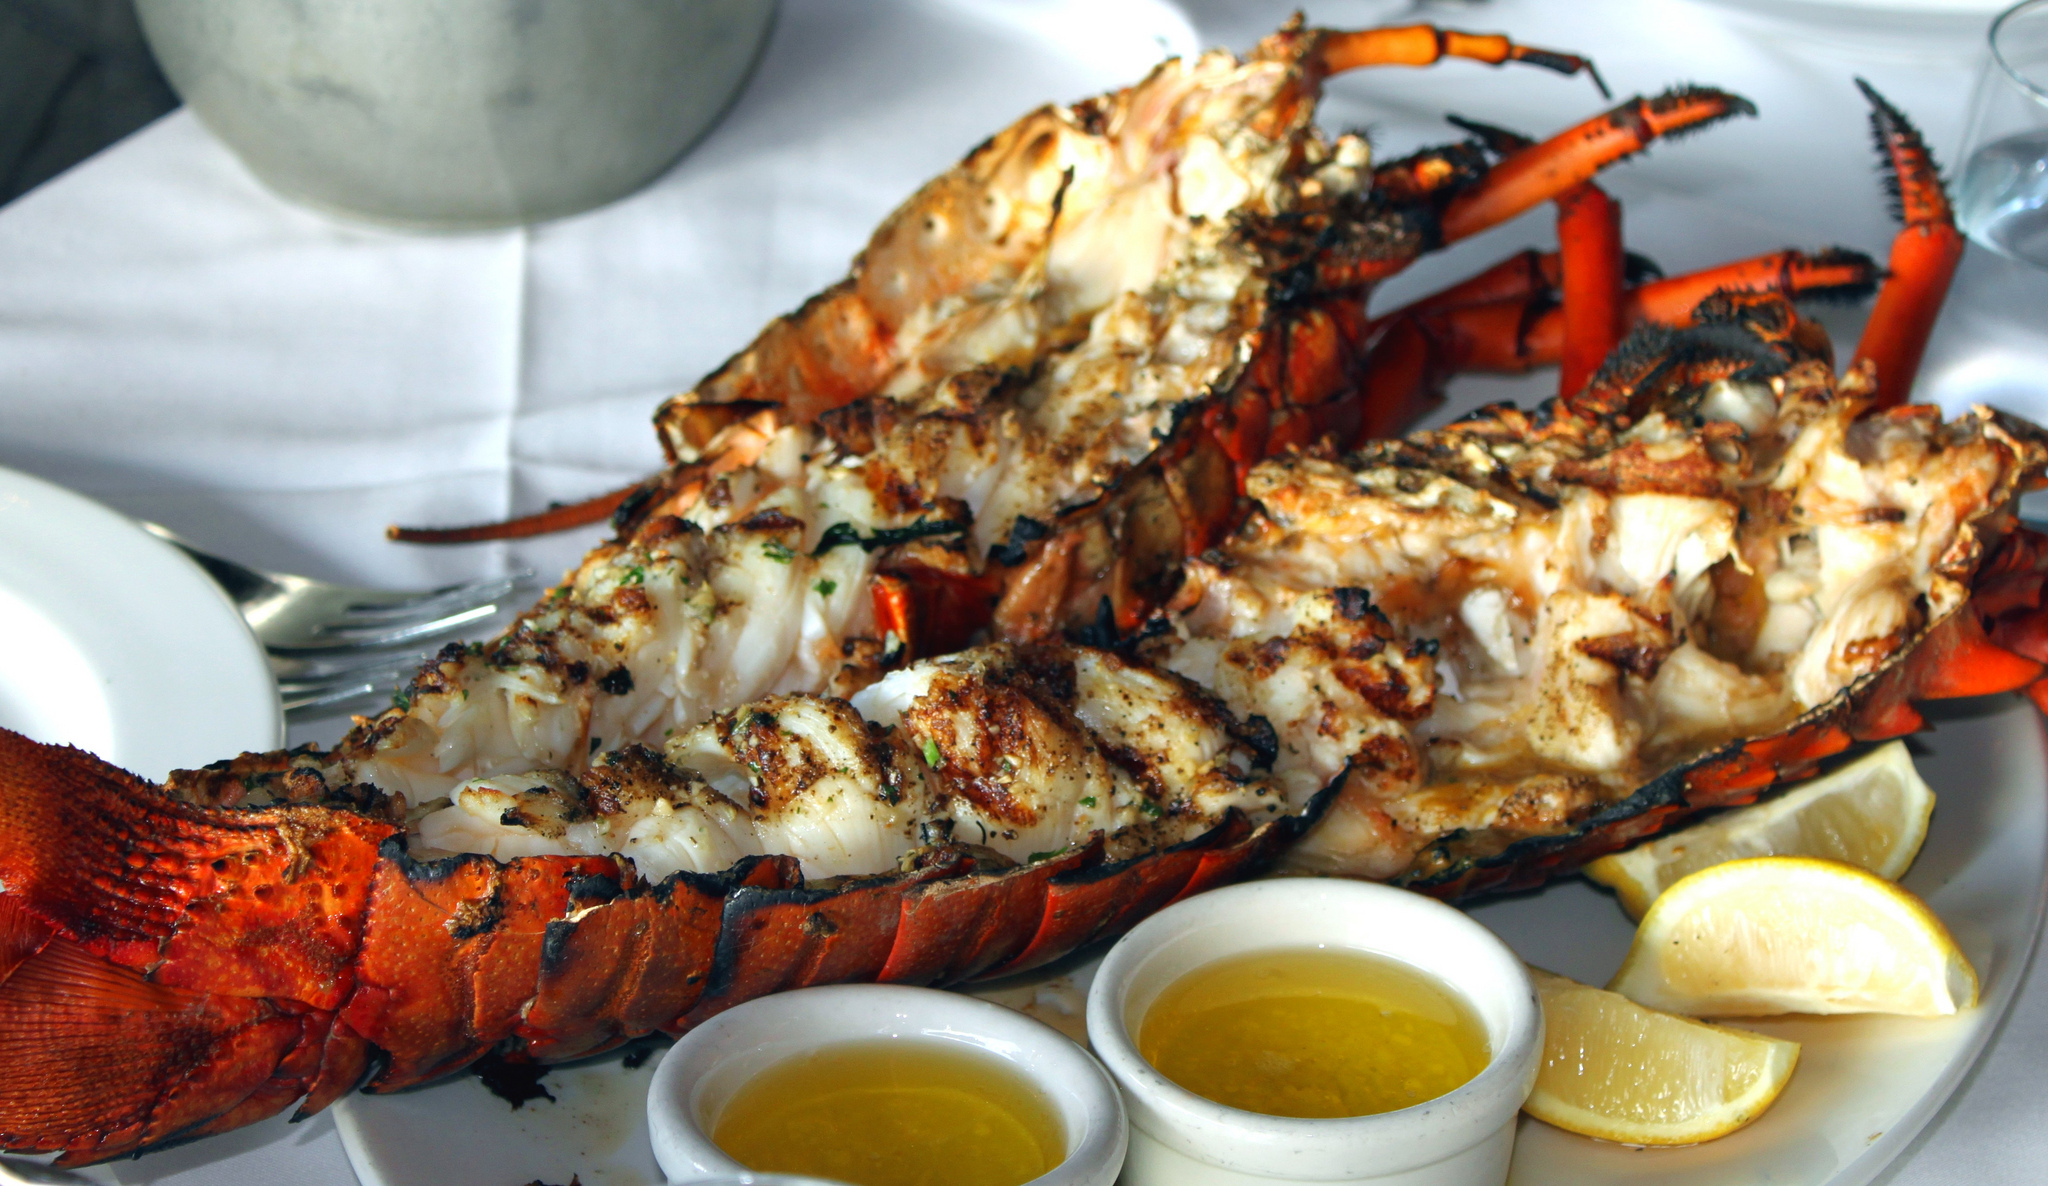 Grilled Lobster | ©prayitnophotography/flickr